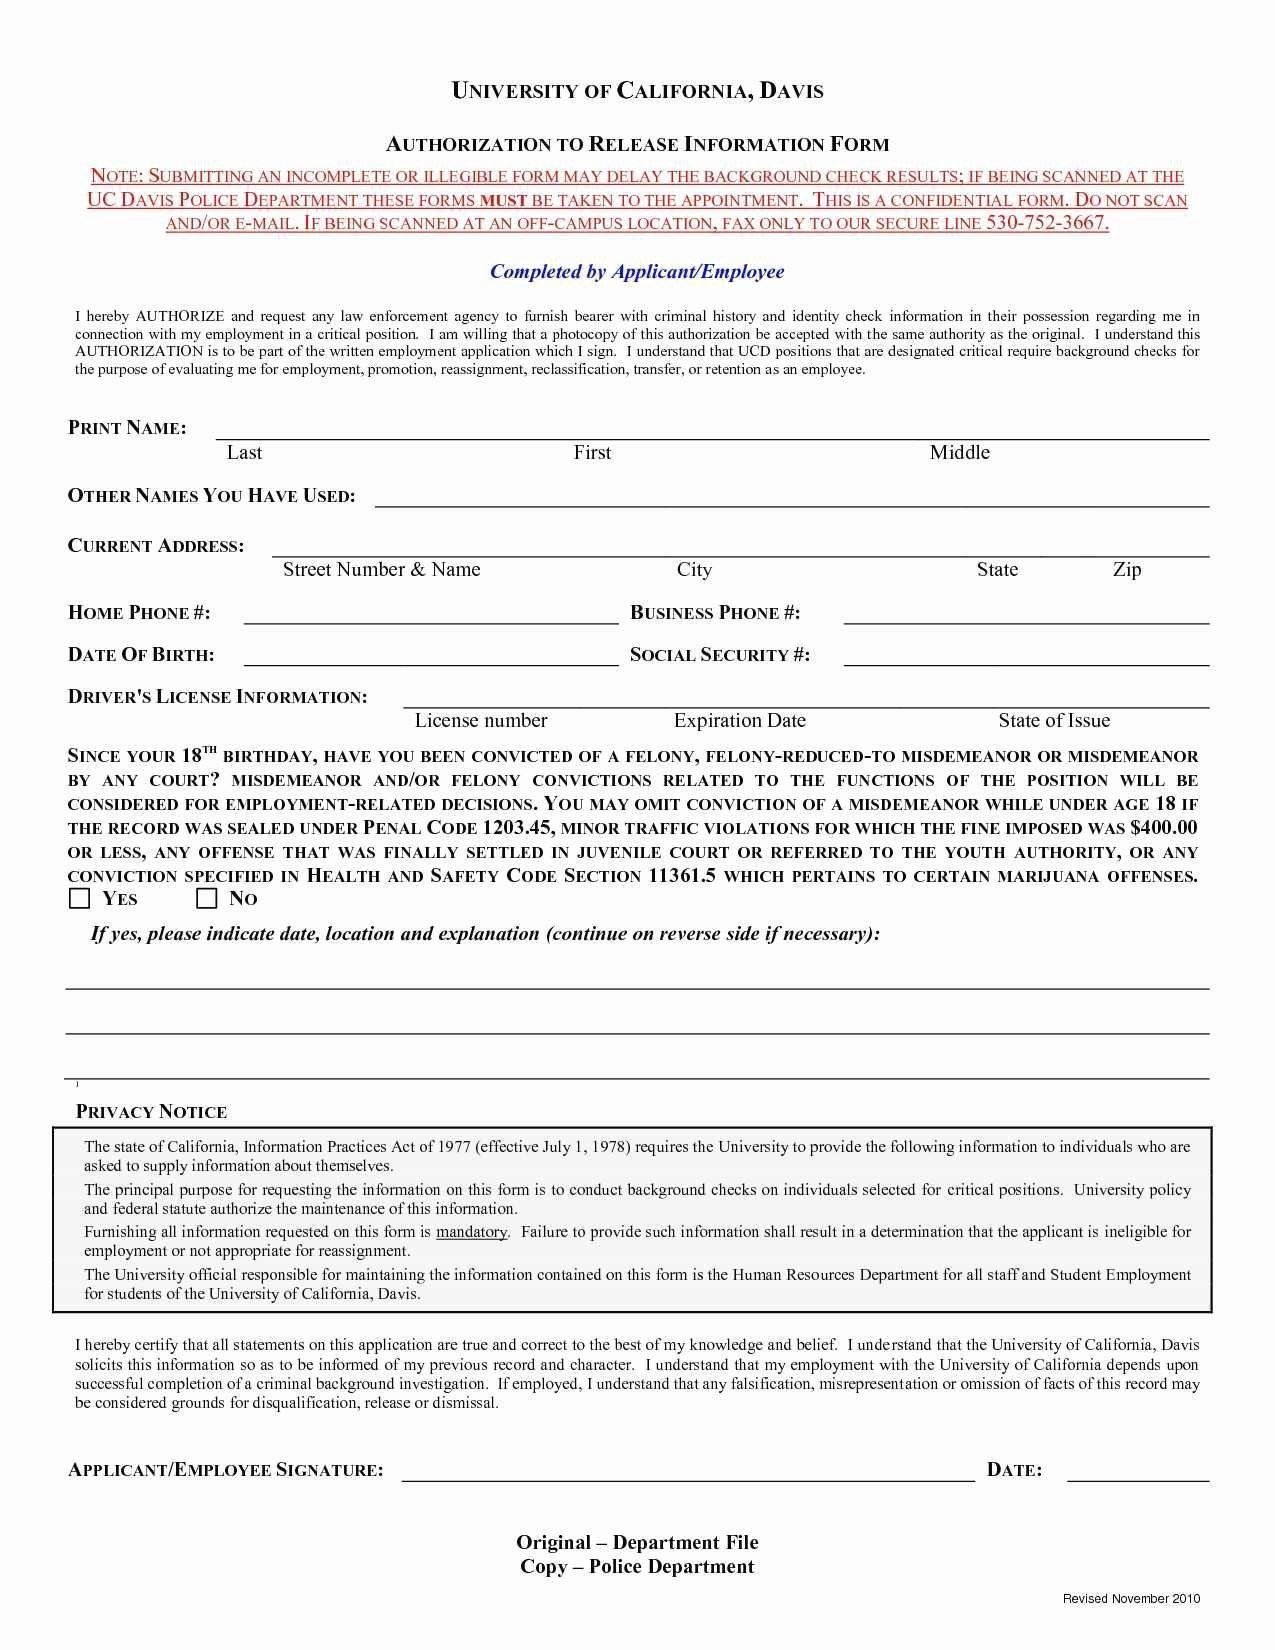 006 Sensational Background Check Form Template Free Concept  AuthorizationFull